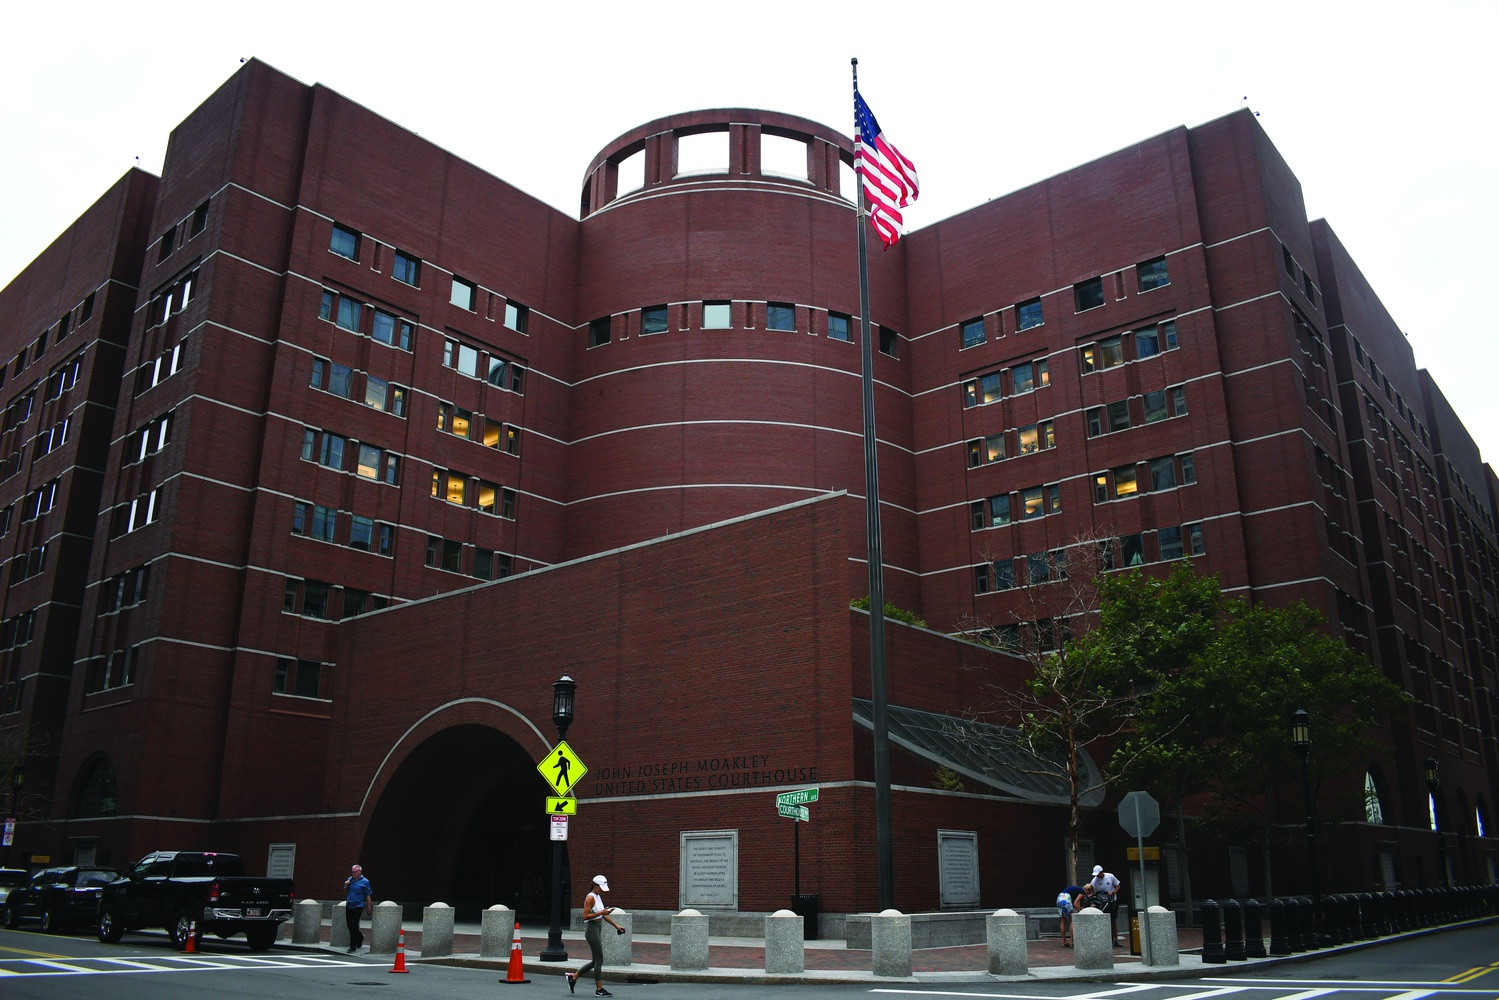 Harvard's ongoing admissions lawsuit is being still reviewed at the John Joseph Moakley Courthouse in Boston, Mass.